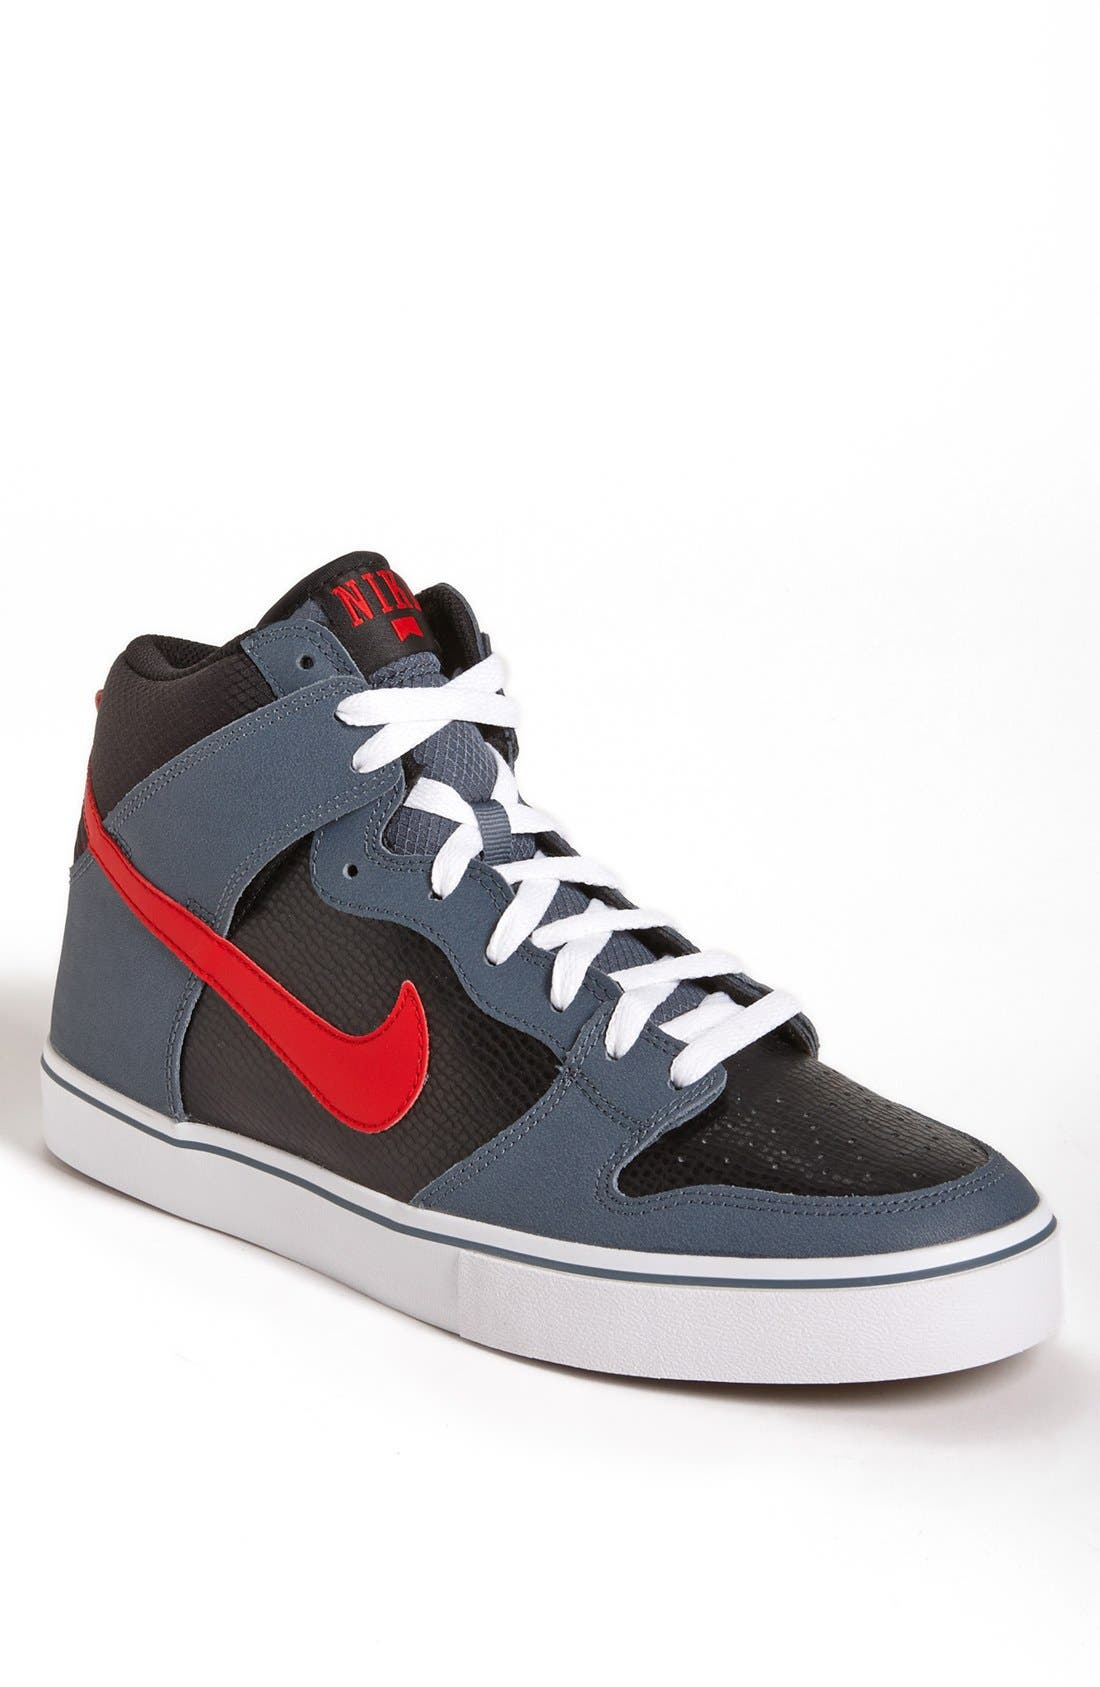 Alternate Image 1 Selected - Nike 'Dunk High LR' Sneaker (Men)